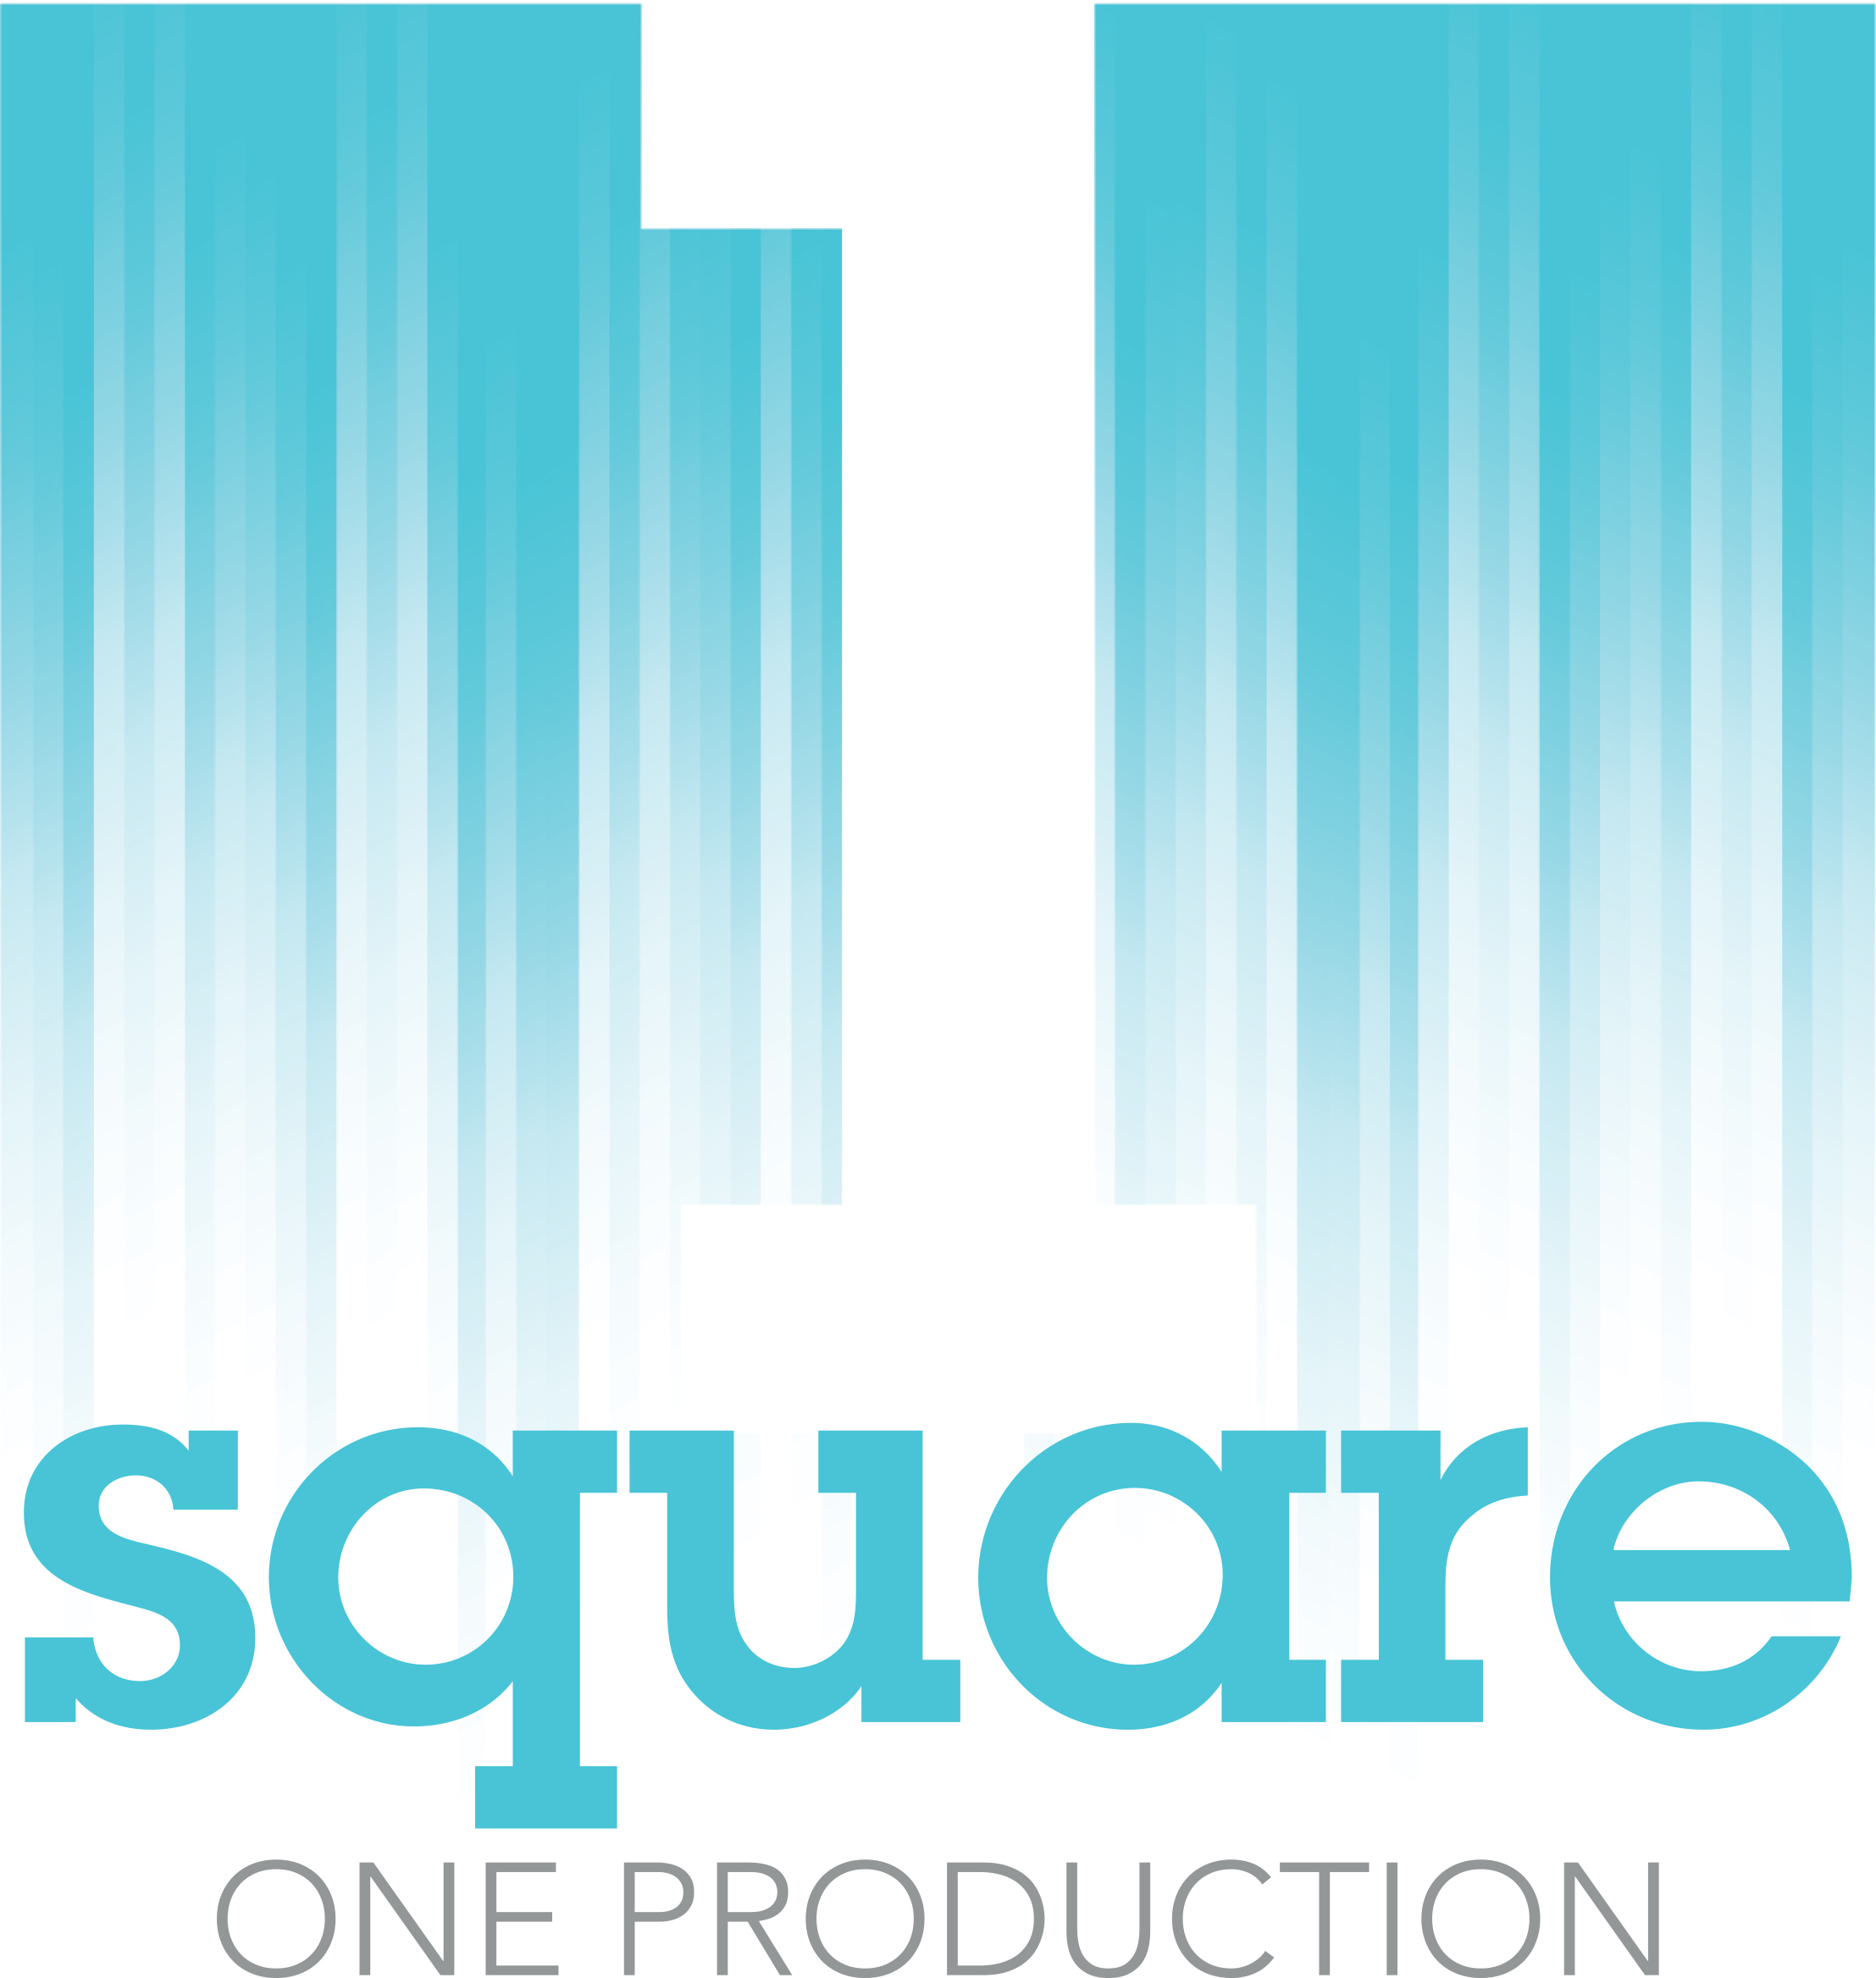 SQUARE ONE is a team of experts. From concept to delivery our team will work with you to complete your production on time and on budget.